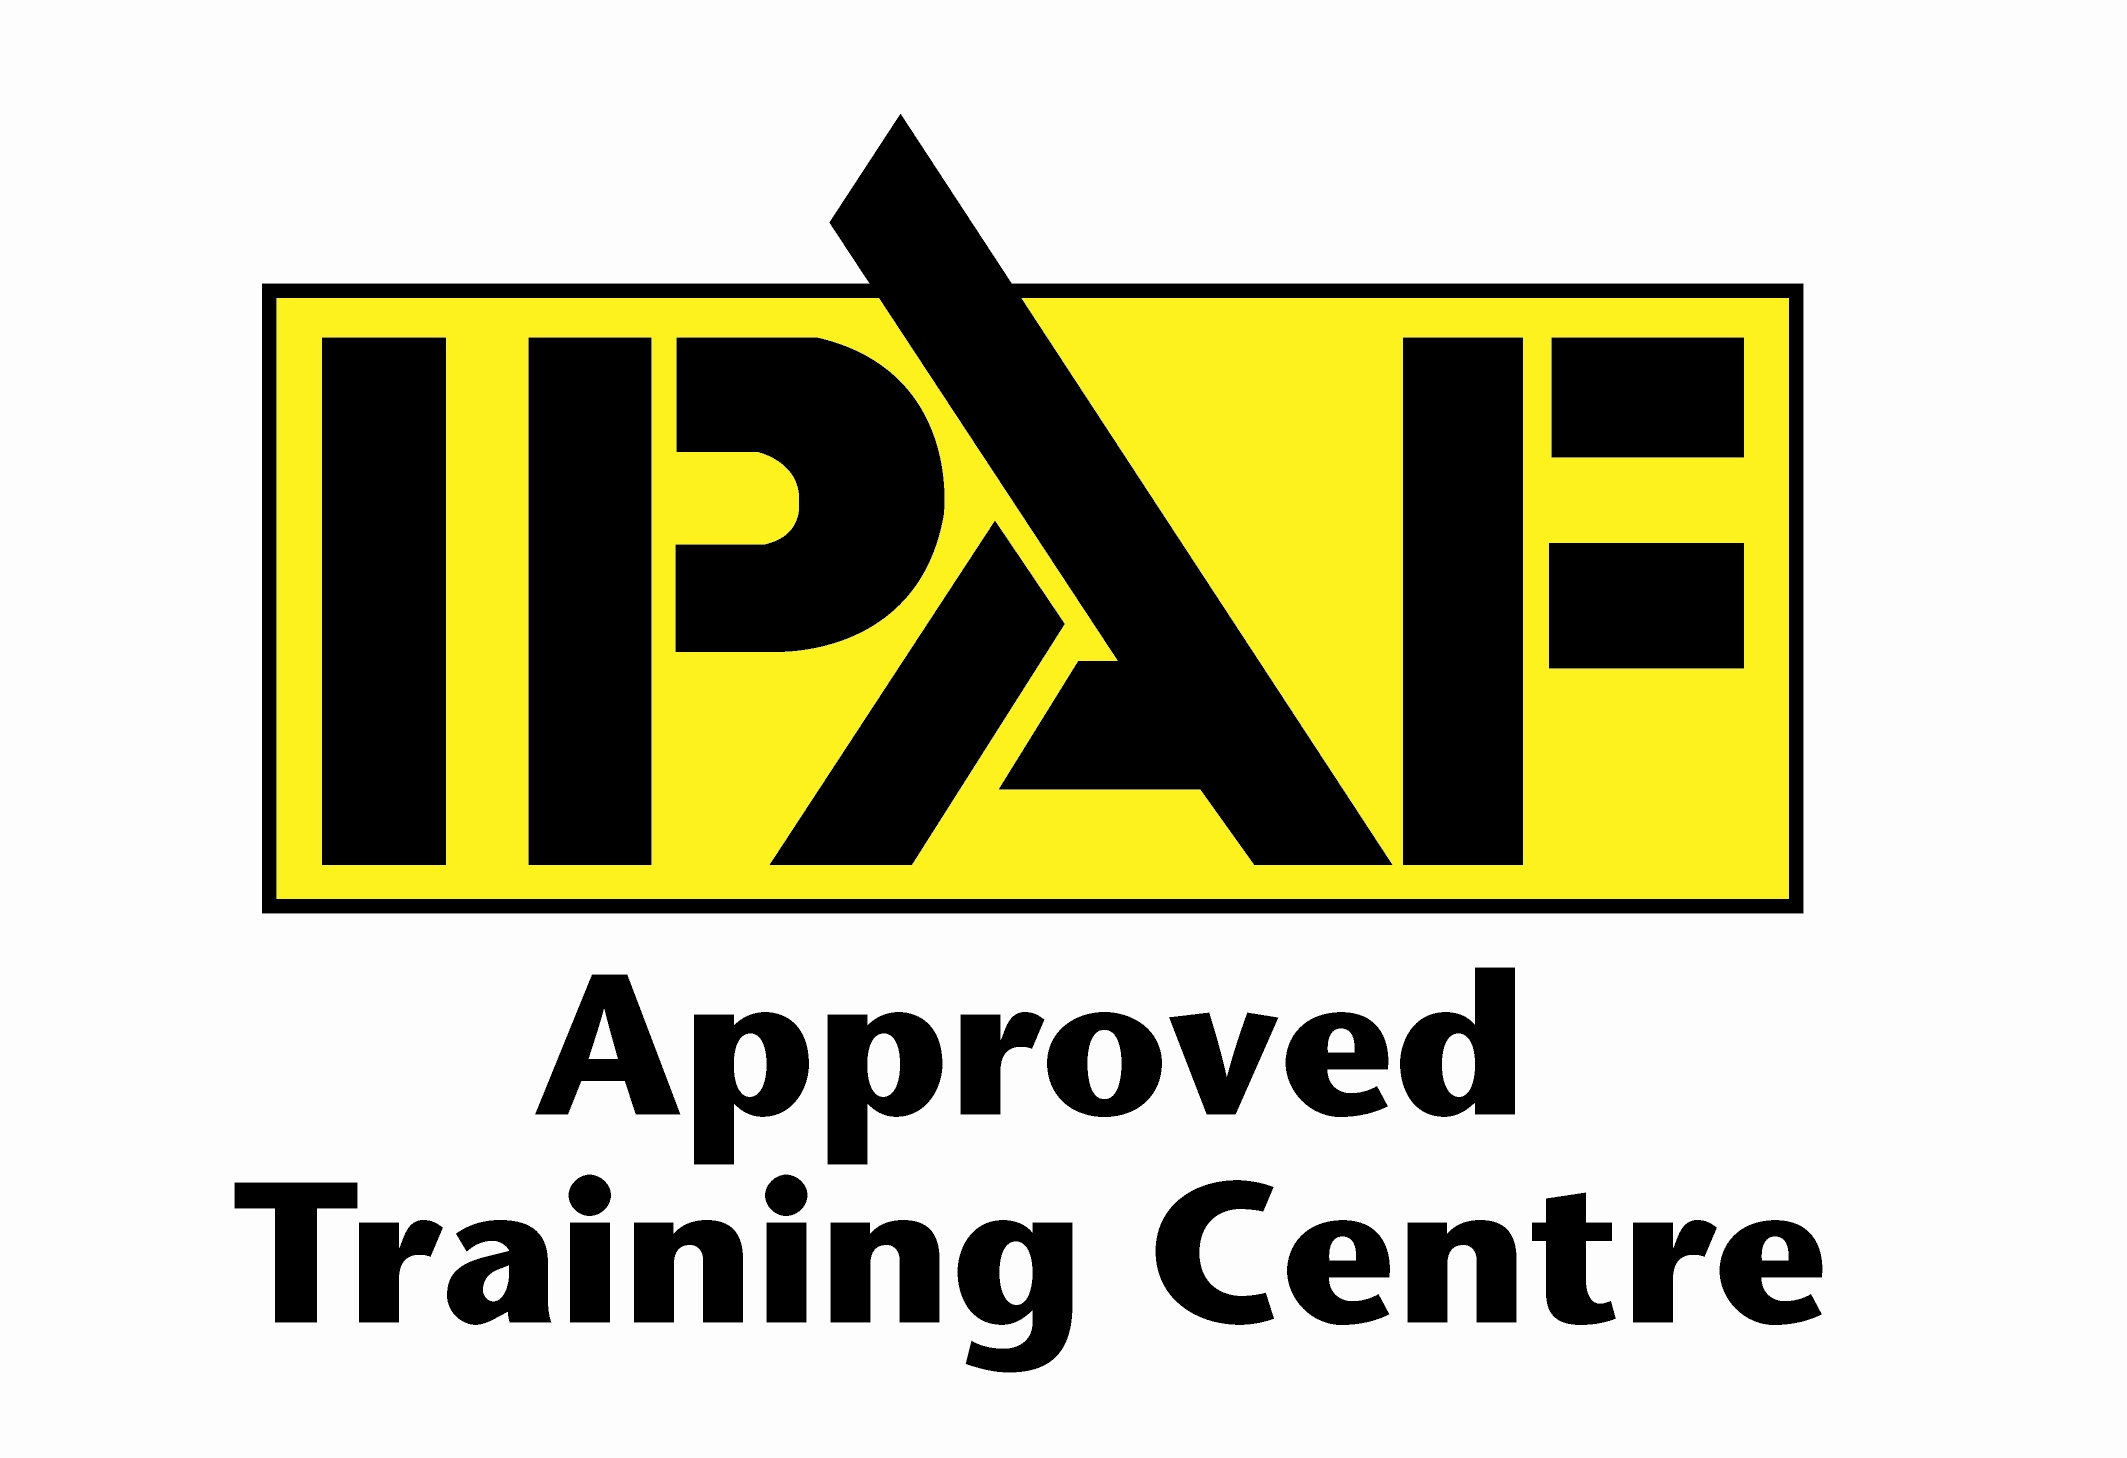 IPAF - Approved Training Centre Logo.jpg